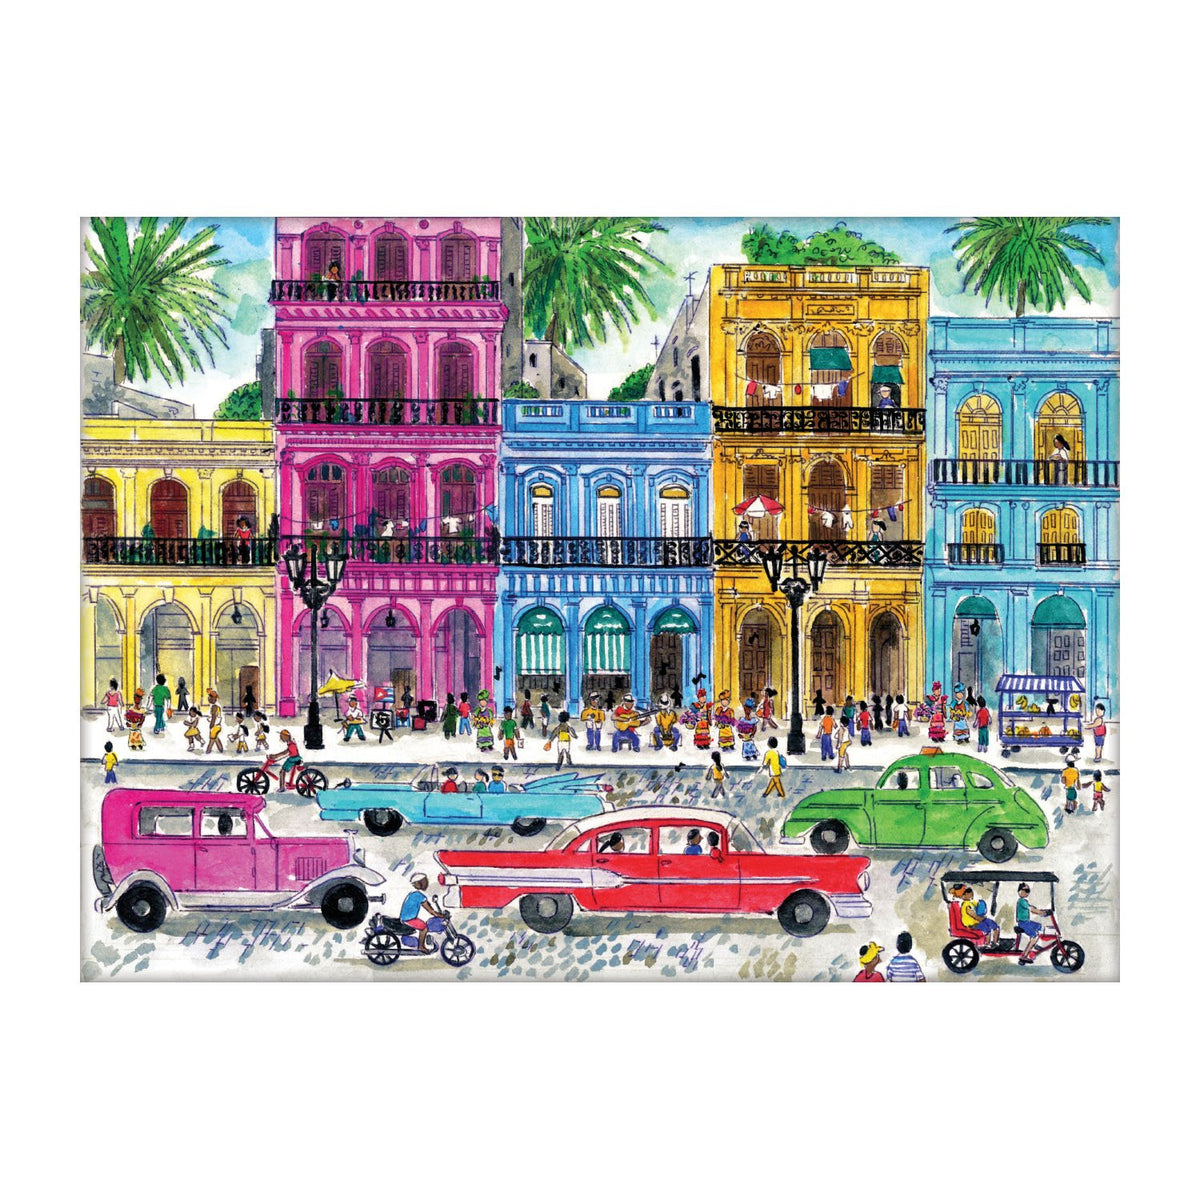 Michael Storrings Cuba 1000 Piece Puzzle - Quick Ship - Puzzlicious.com